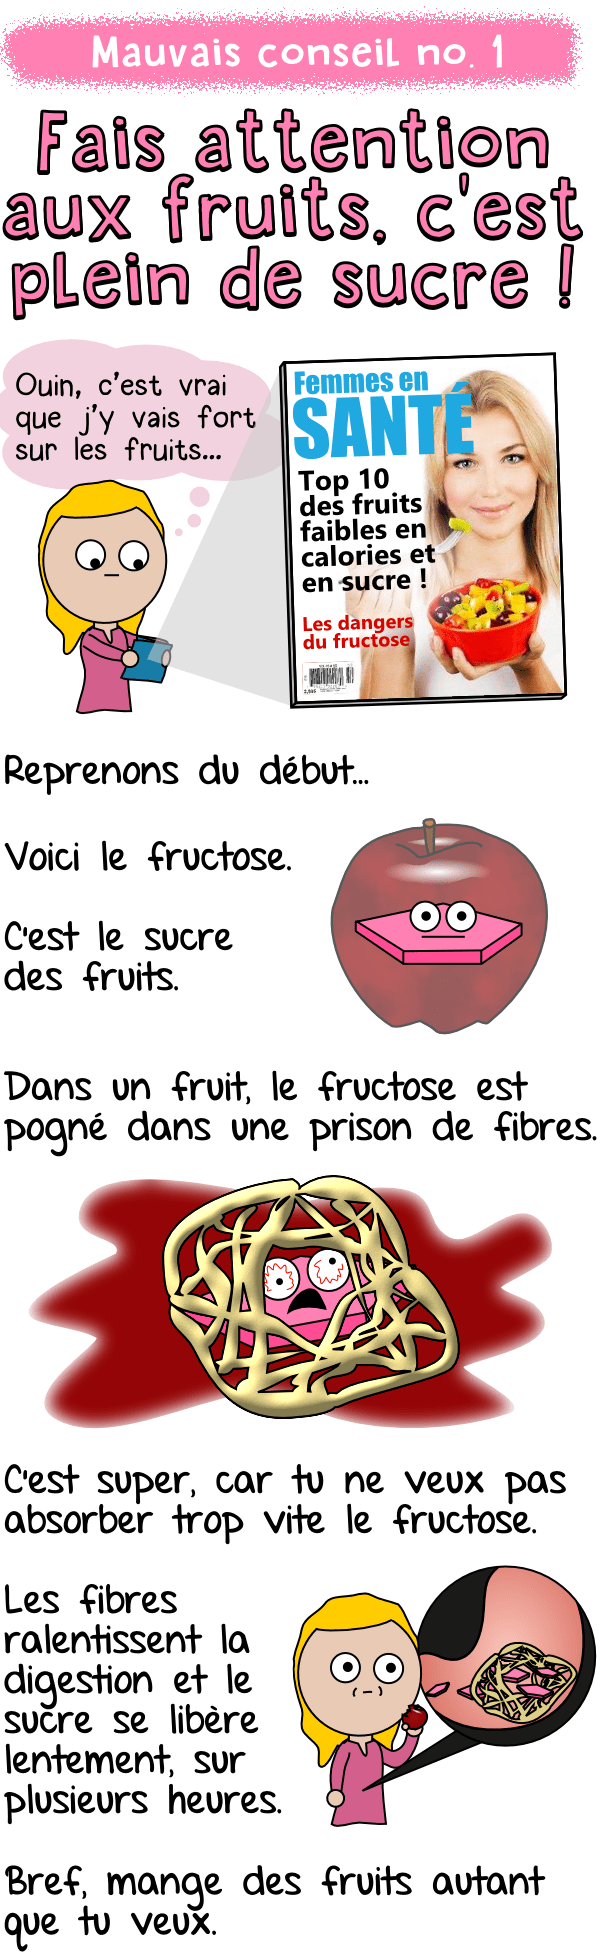 Fais attention aux fruits c'est plein de sucre